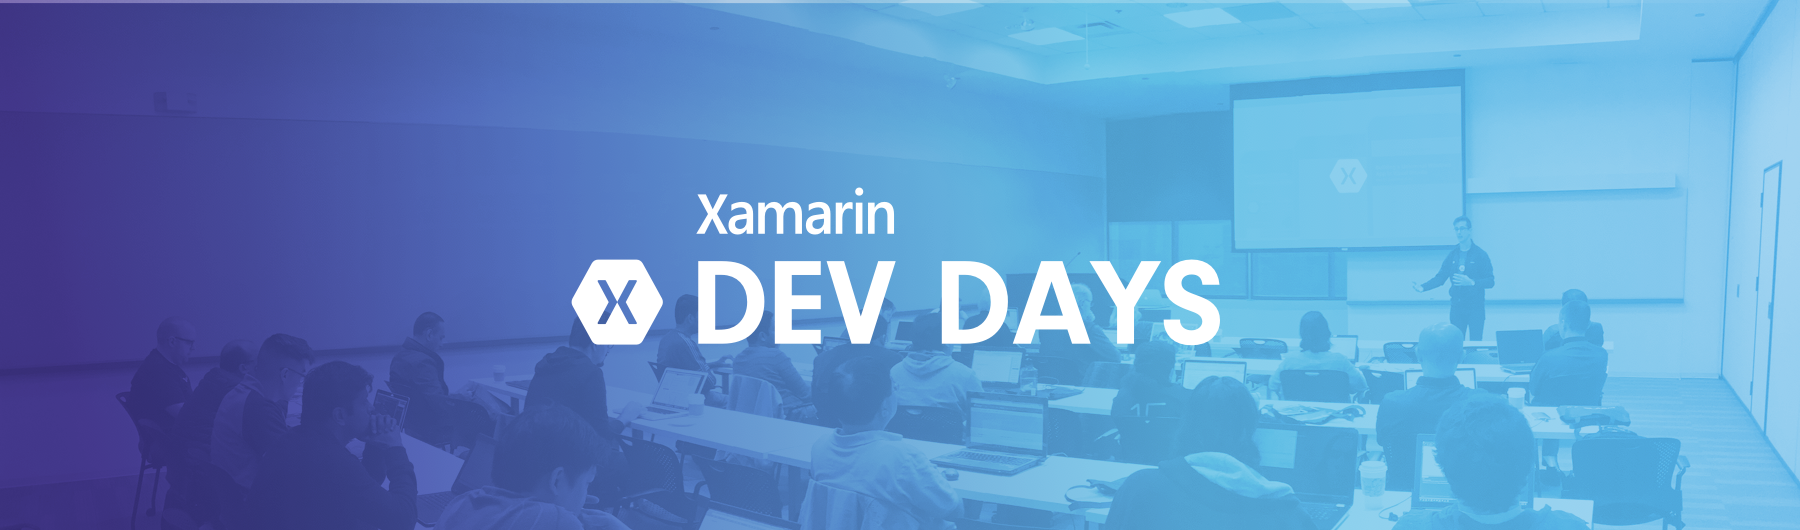 Xamarin Dev Days - Madrid